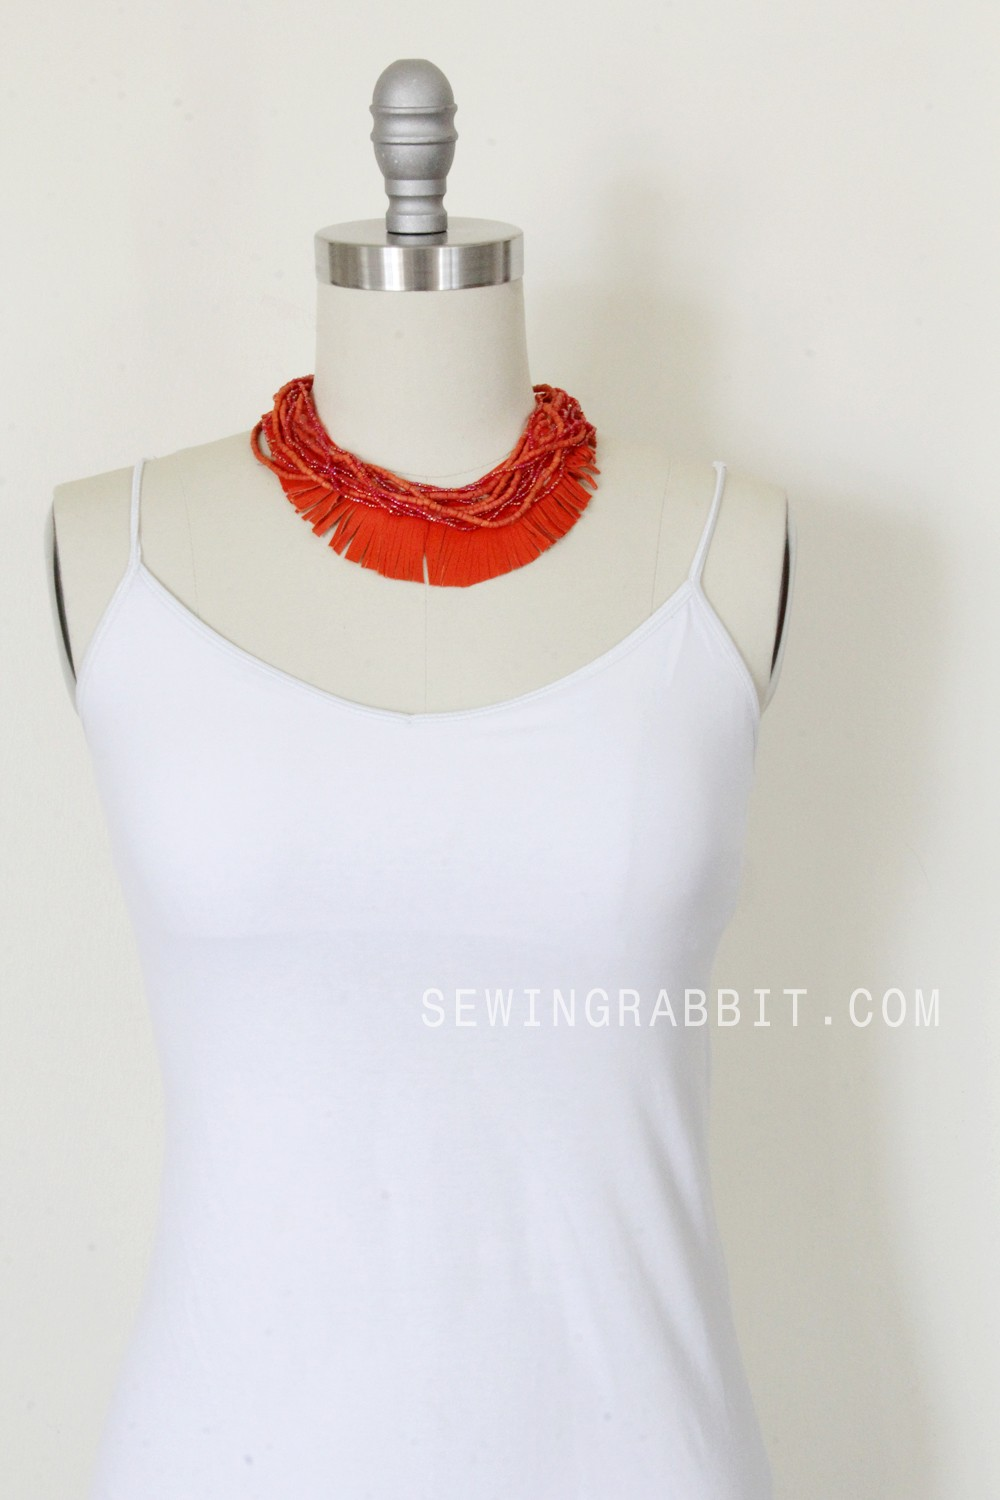 How to make a leather and bead fringe necklace, easy jewelry craft DIY